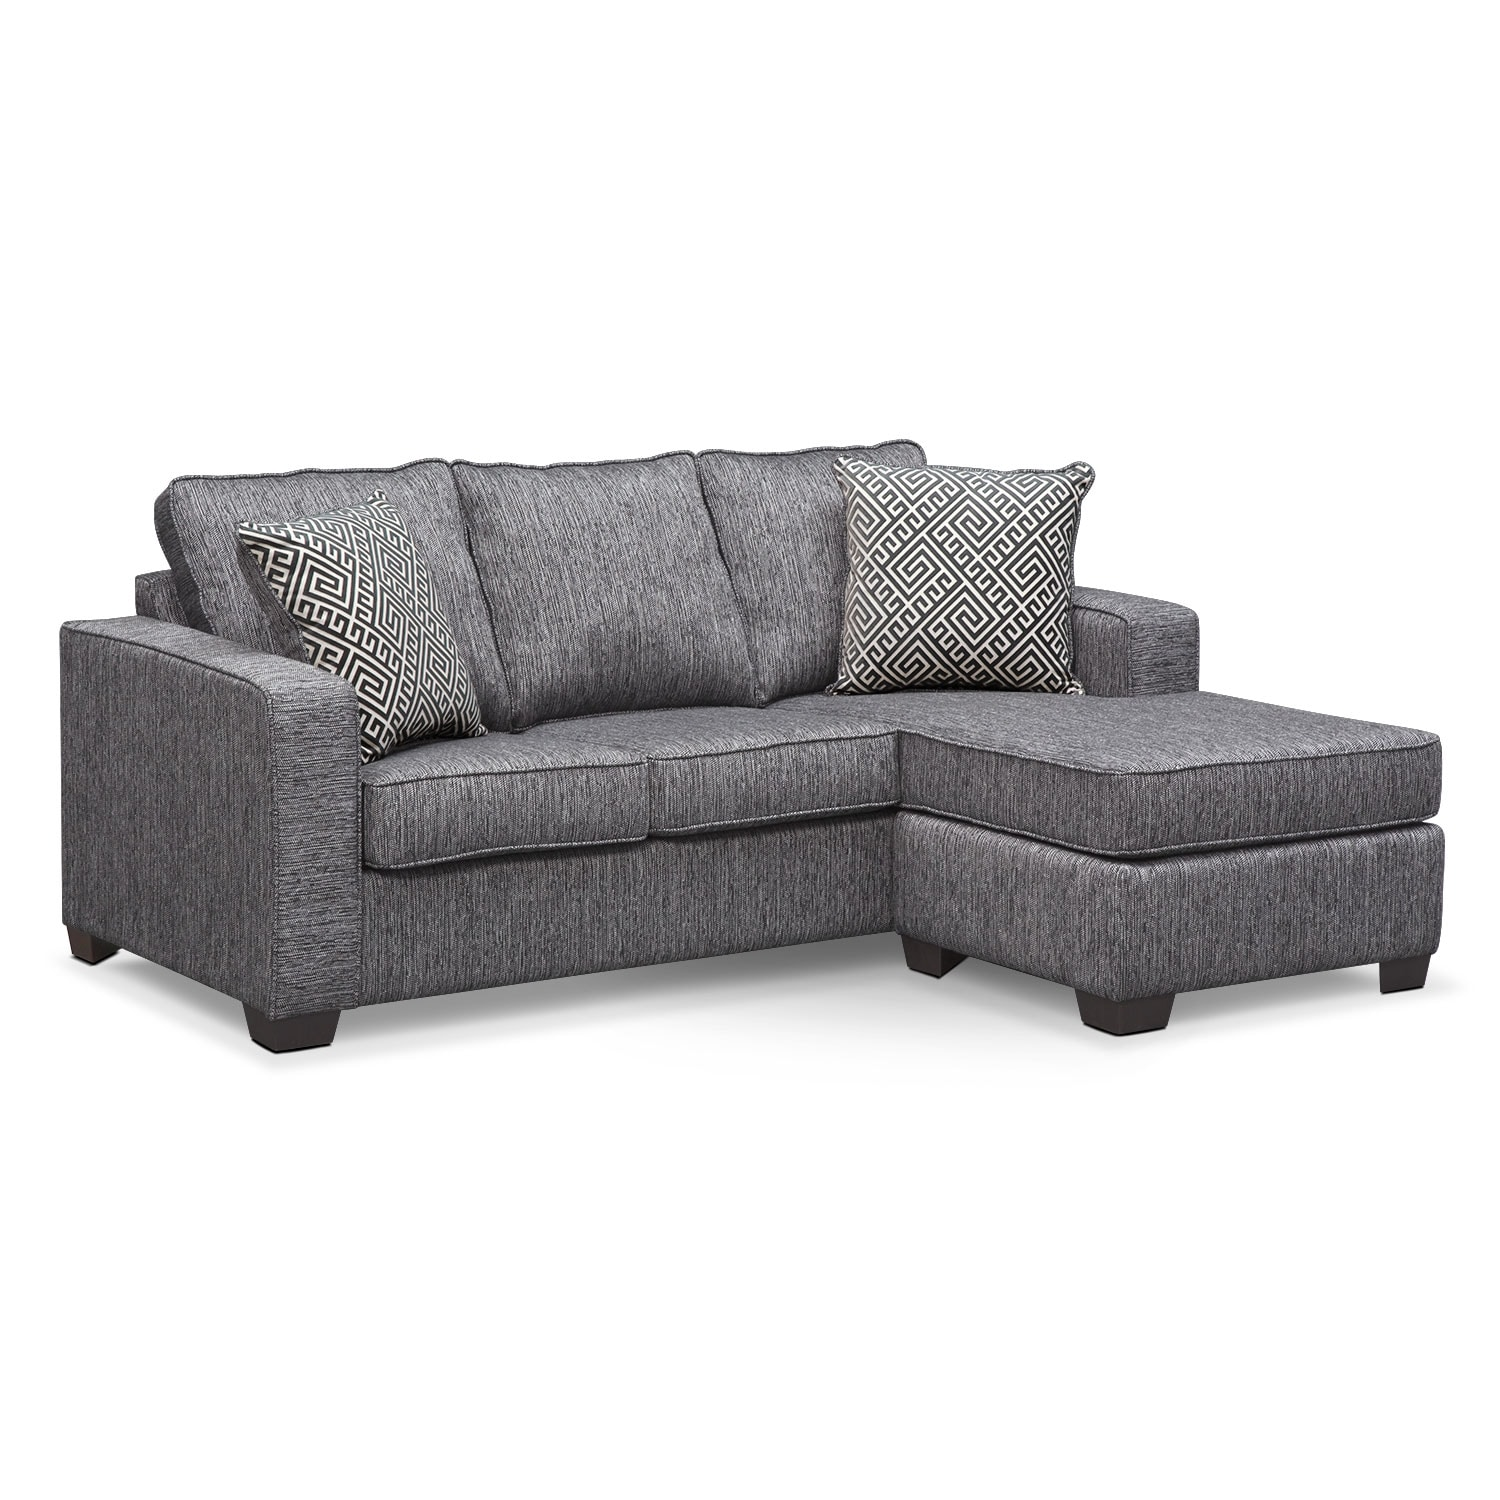 Living Room Furniture - Sterling Charcoal Queen Memory Foam Sleeper Sofa w/ Chaise